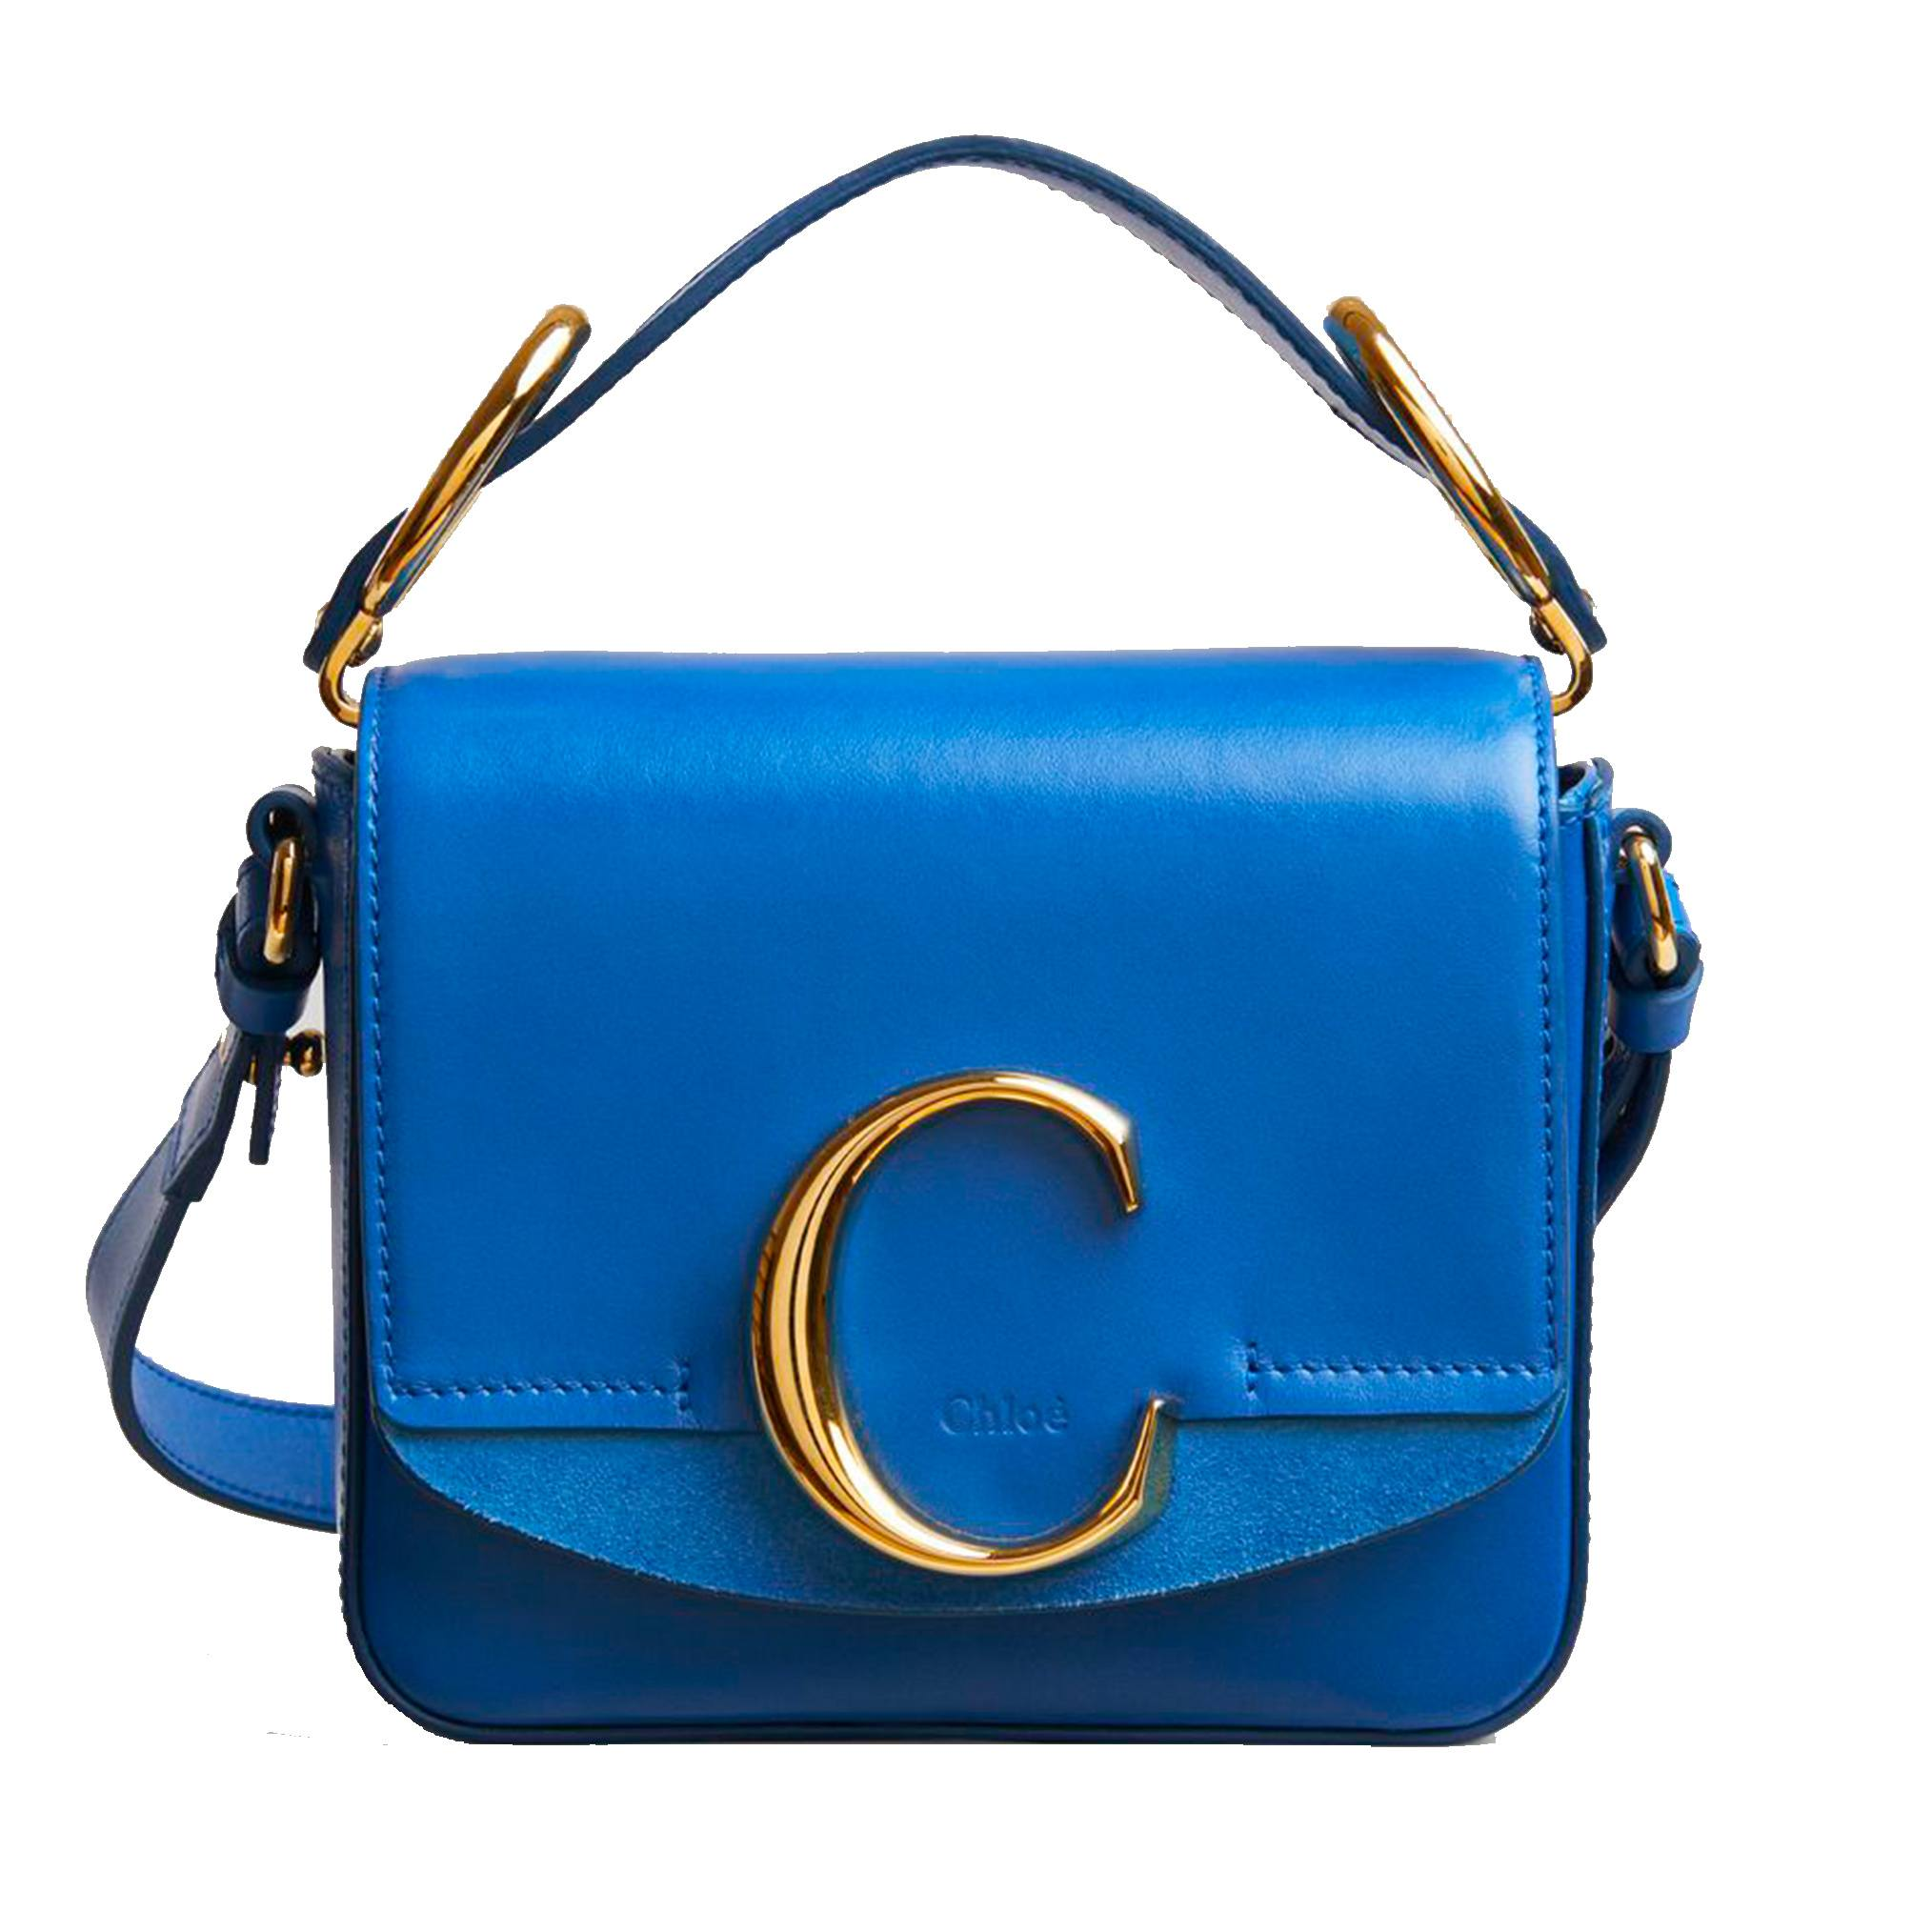 Chloé mini C Bag in blue suede and calfskin